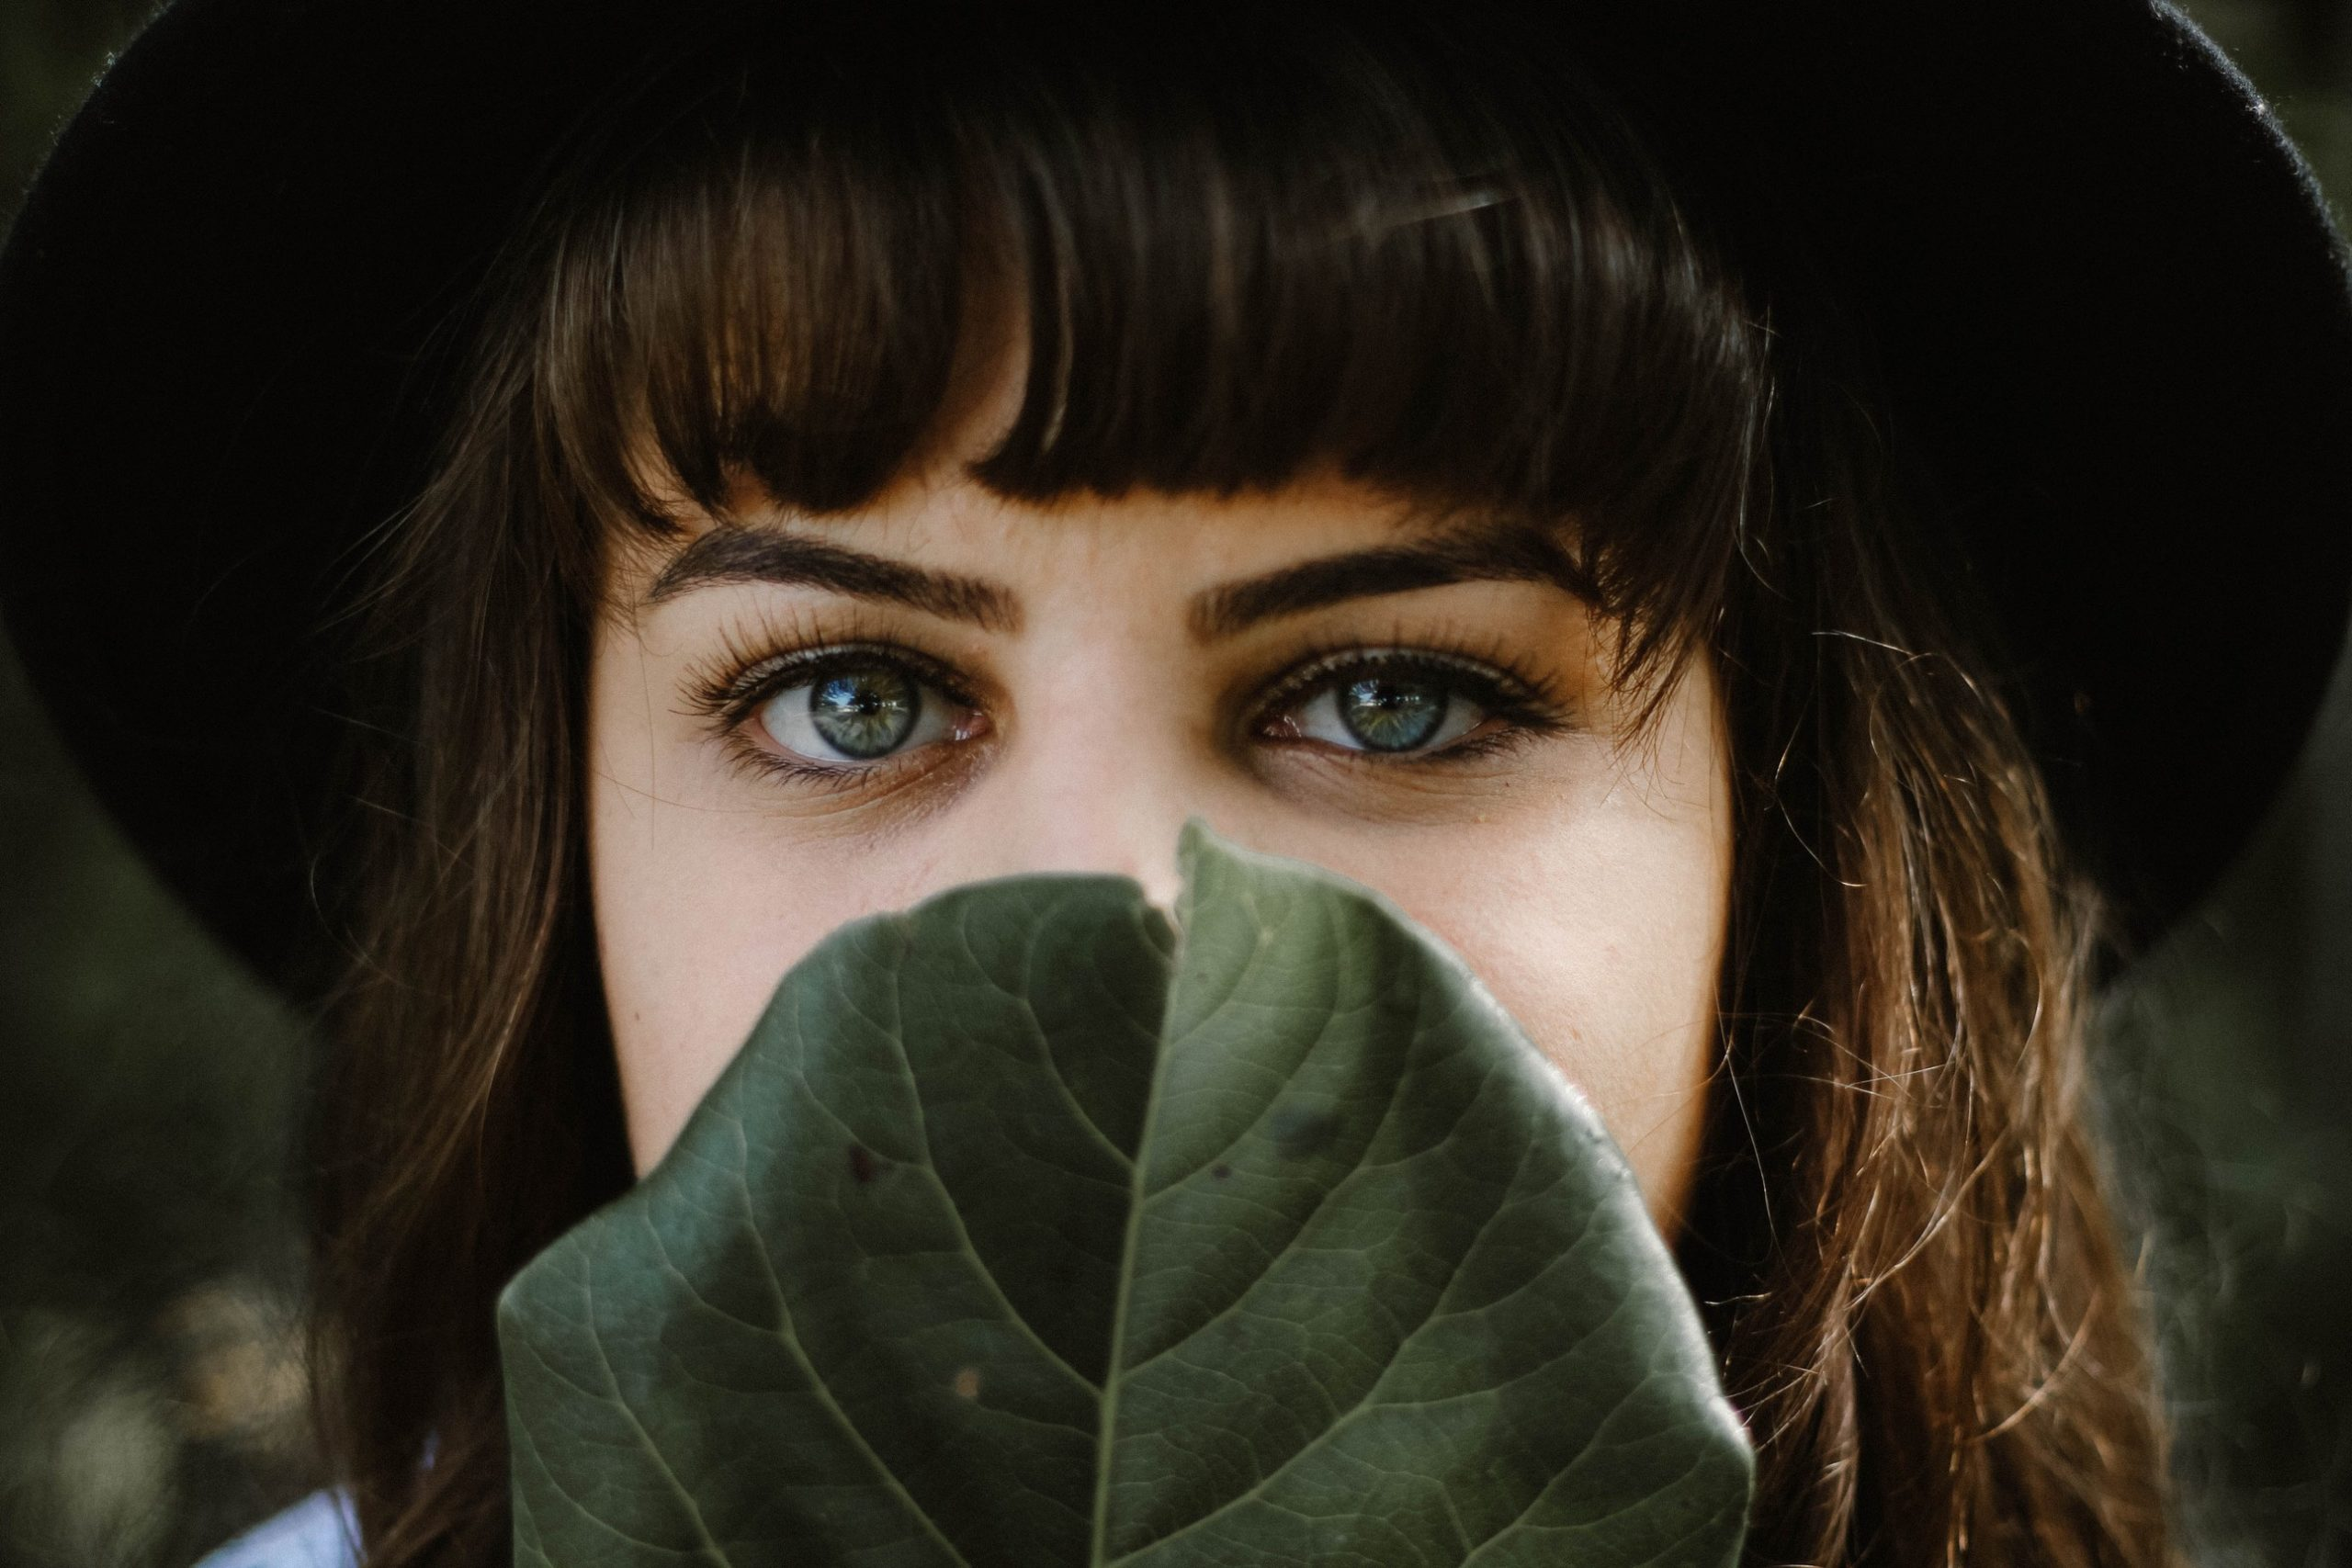 causes of acne can be fringes: woman with a curled fringe holding a leaf over her face.